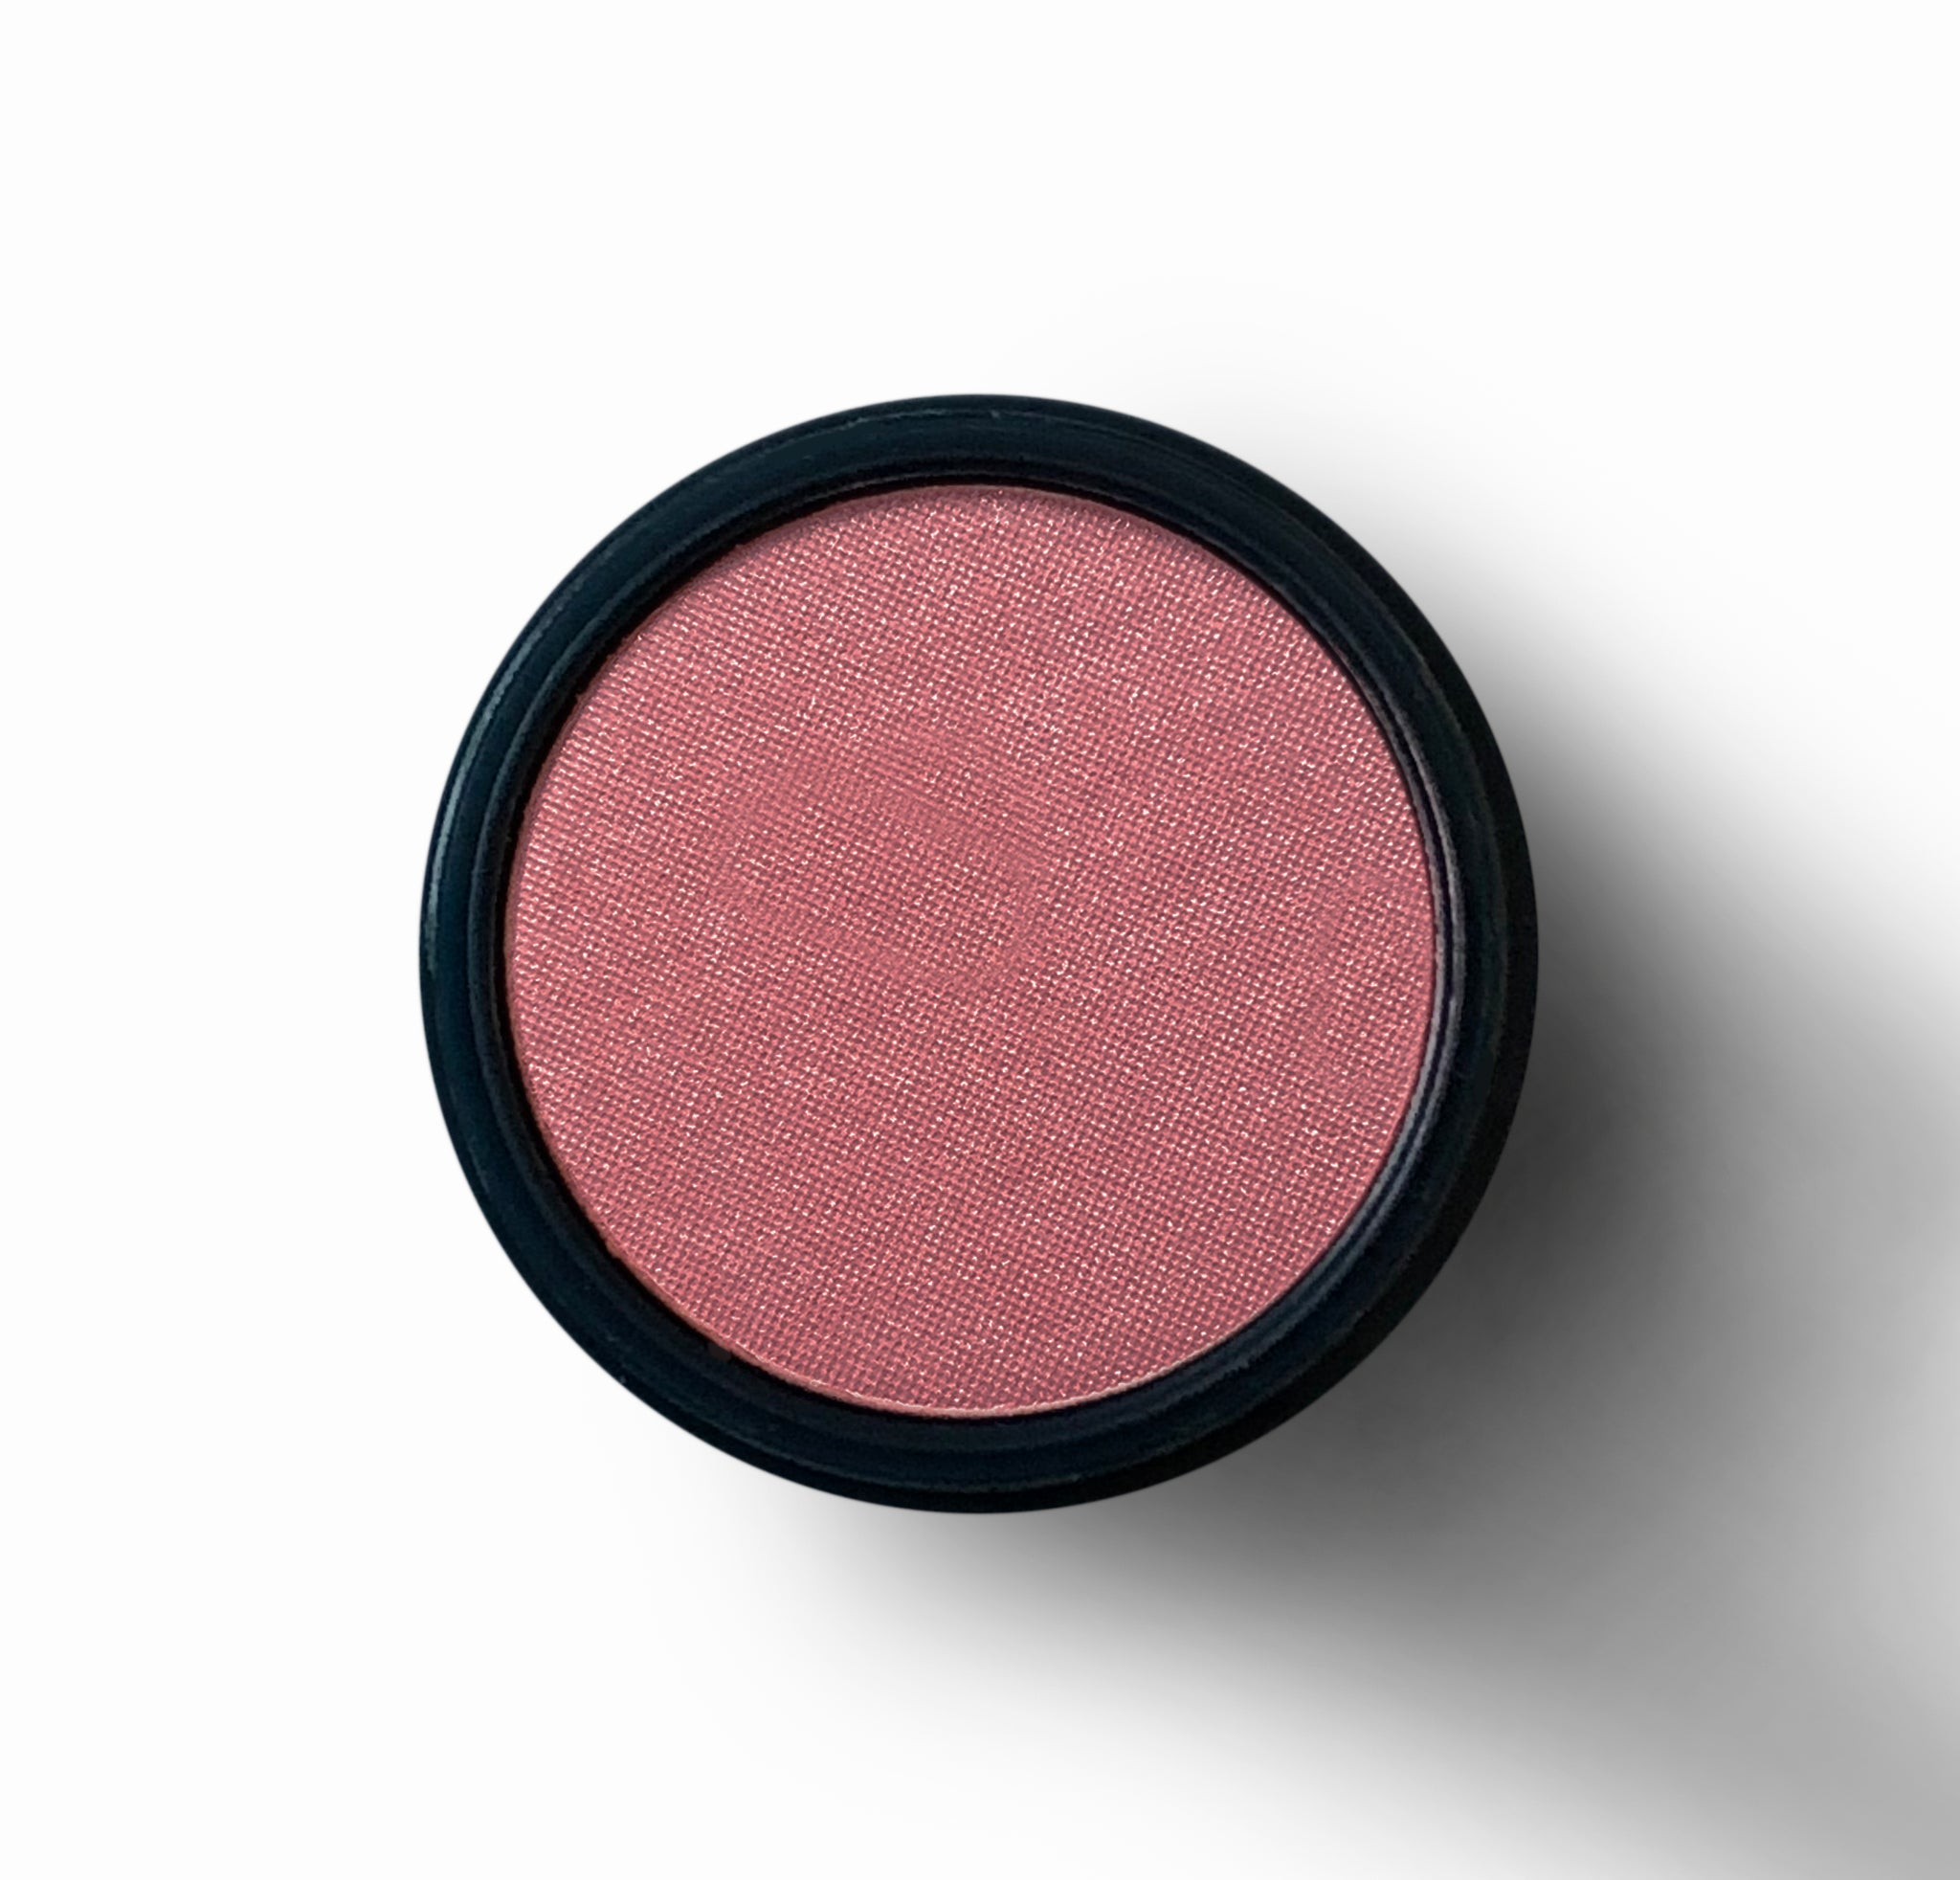 Space Case Cosmetics - It's Not Me It's My Sign, Blush